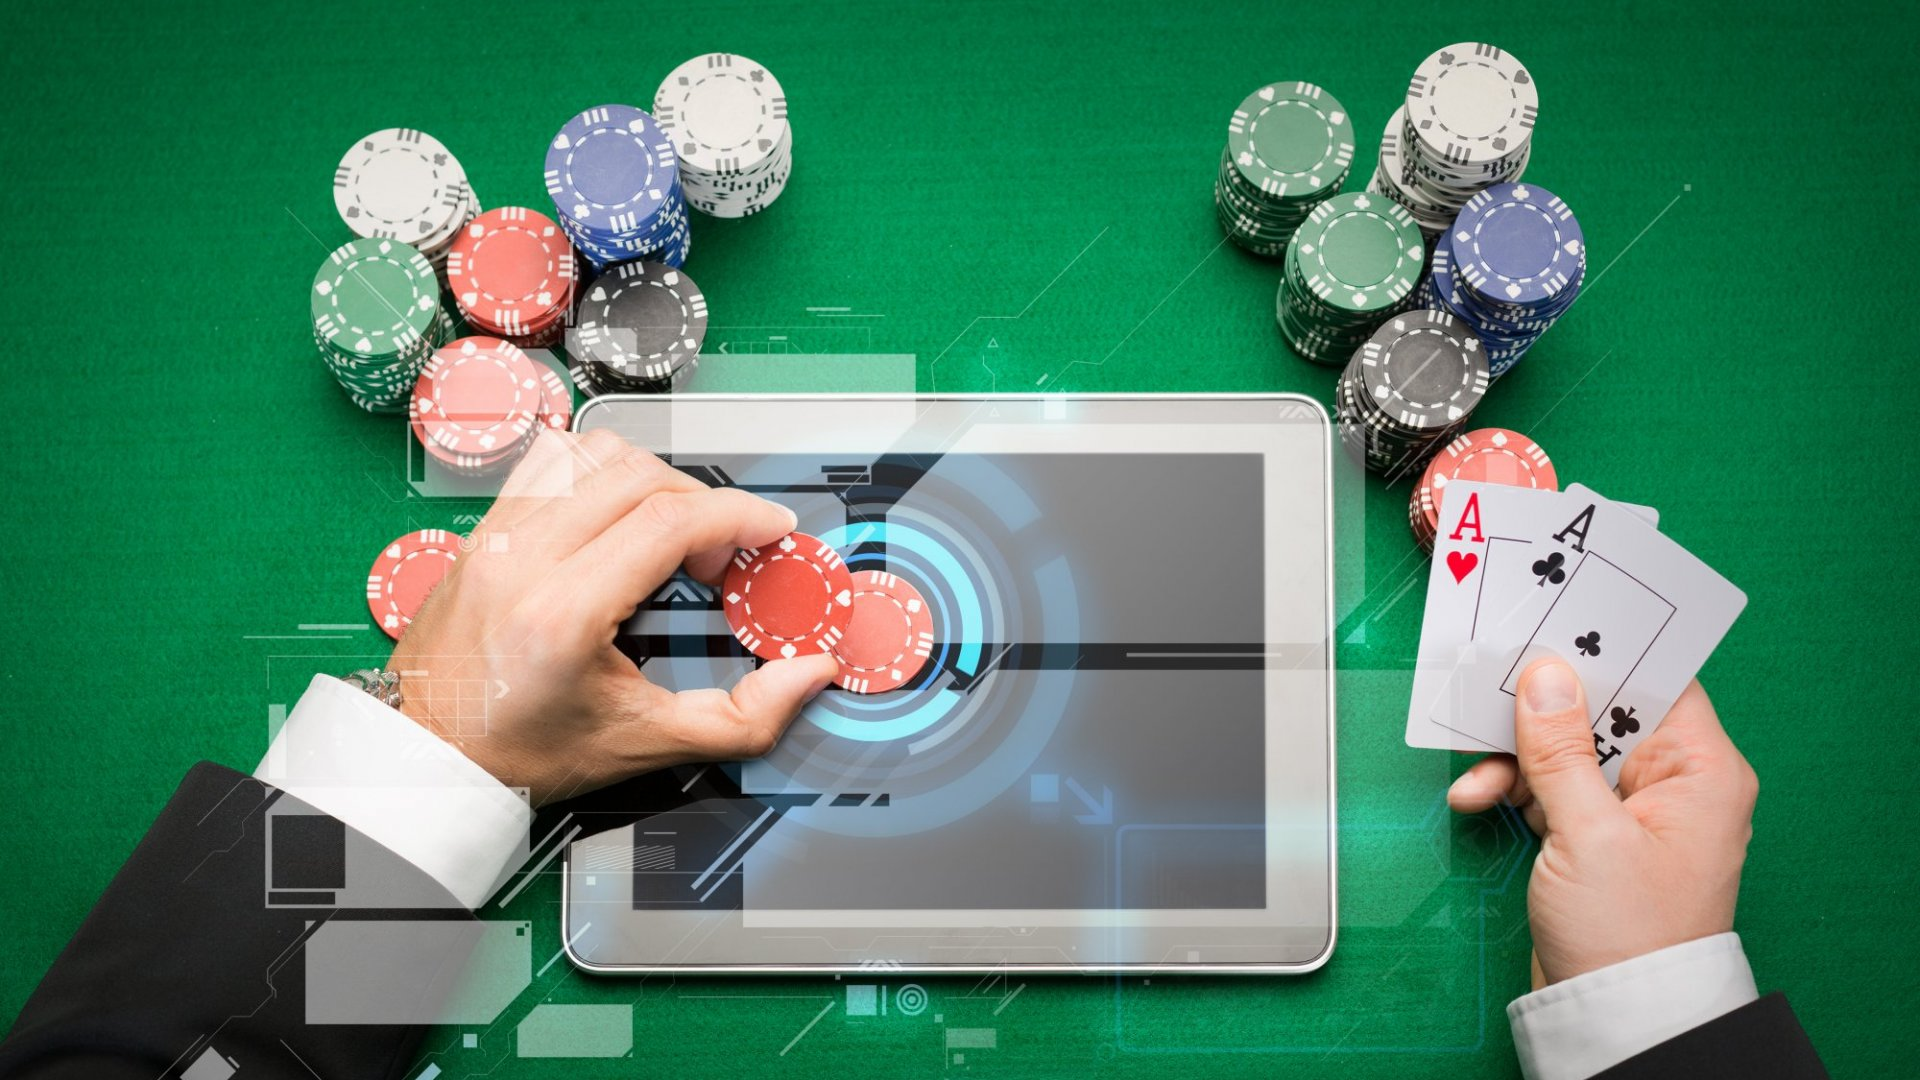 The Ultimate Online Casino Trick